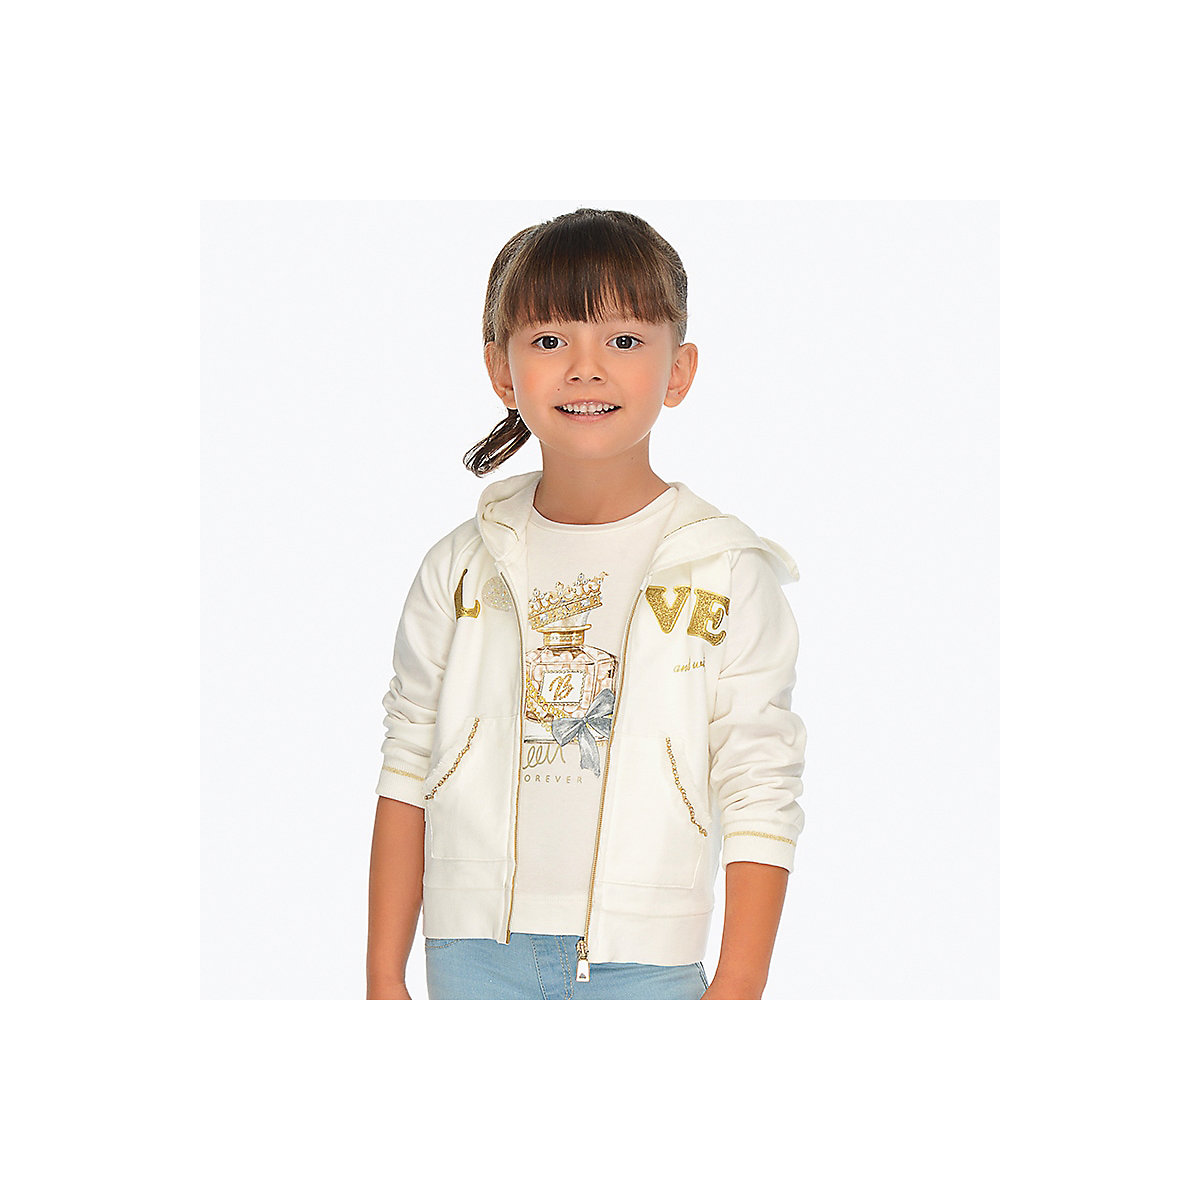 Sweaters MAYORAL 10678586 sweatshirt hoodies for kids cardigan clothes for girls and boys cardigan for boys kotmarkot 15508 kid clothes